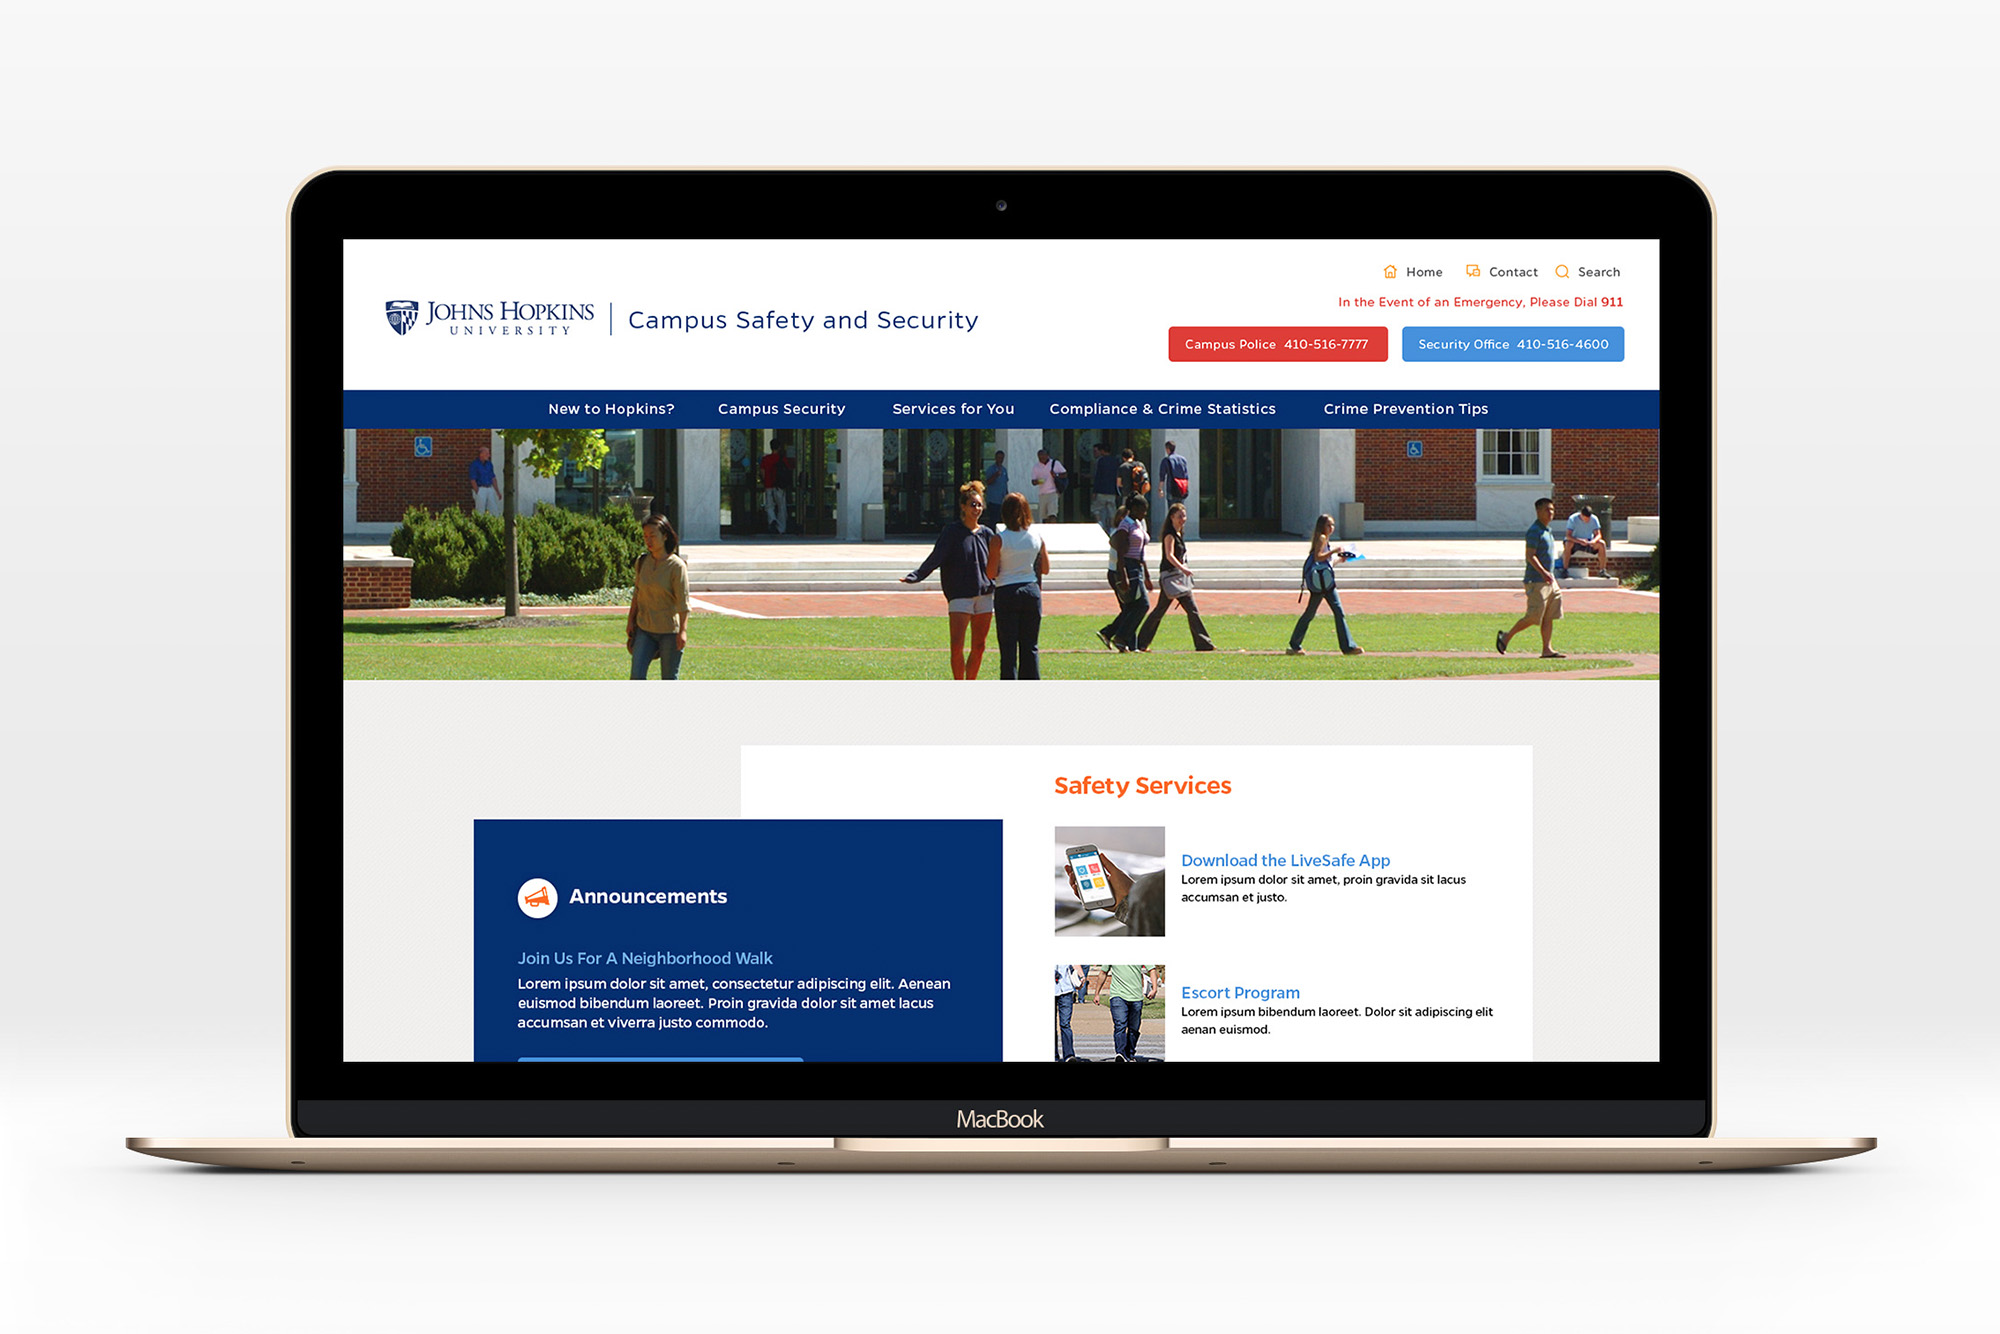 laptop mockup of johns hopkins university campus safety website design